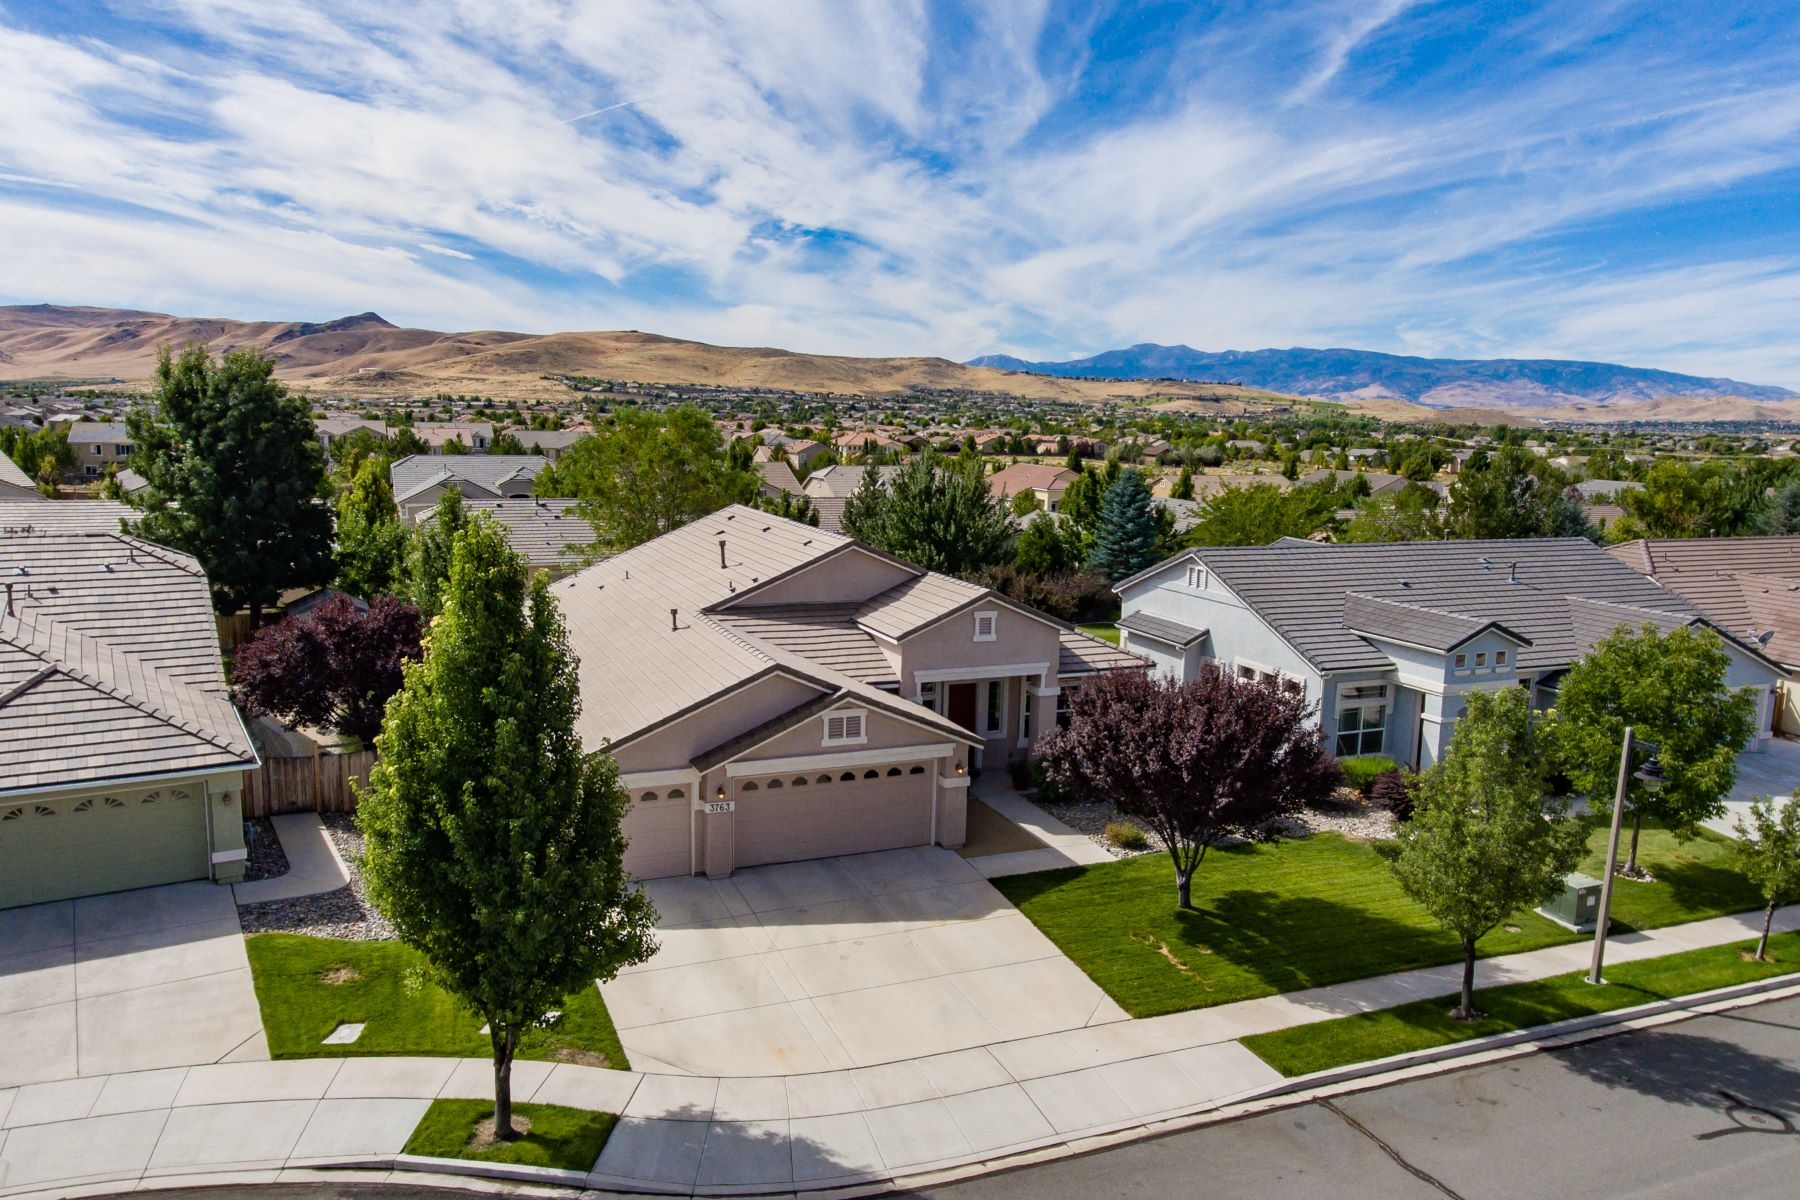 Additional photo for property listing at 3763 Arcturas Court, Sparks, Nevada 3763 Arcturas Court Sparks, Nevada 89436 United States